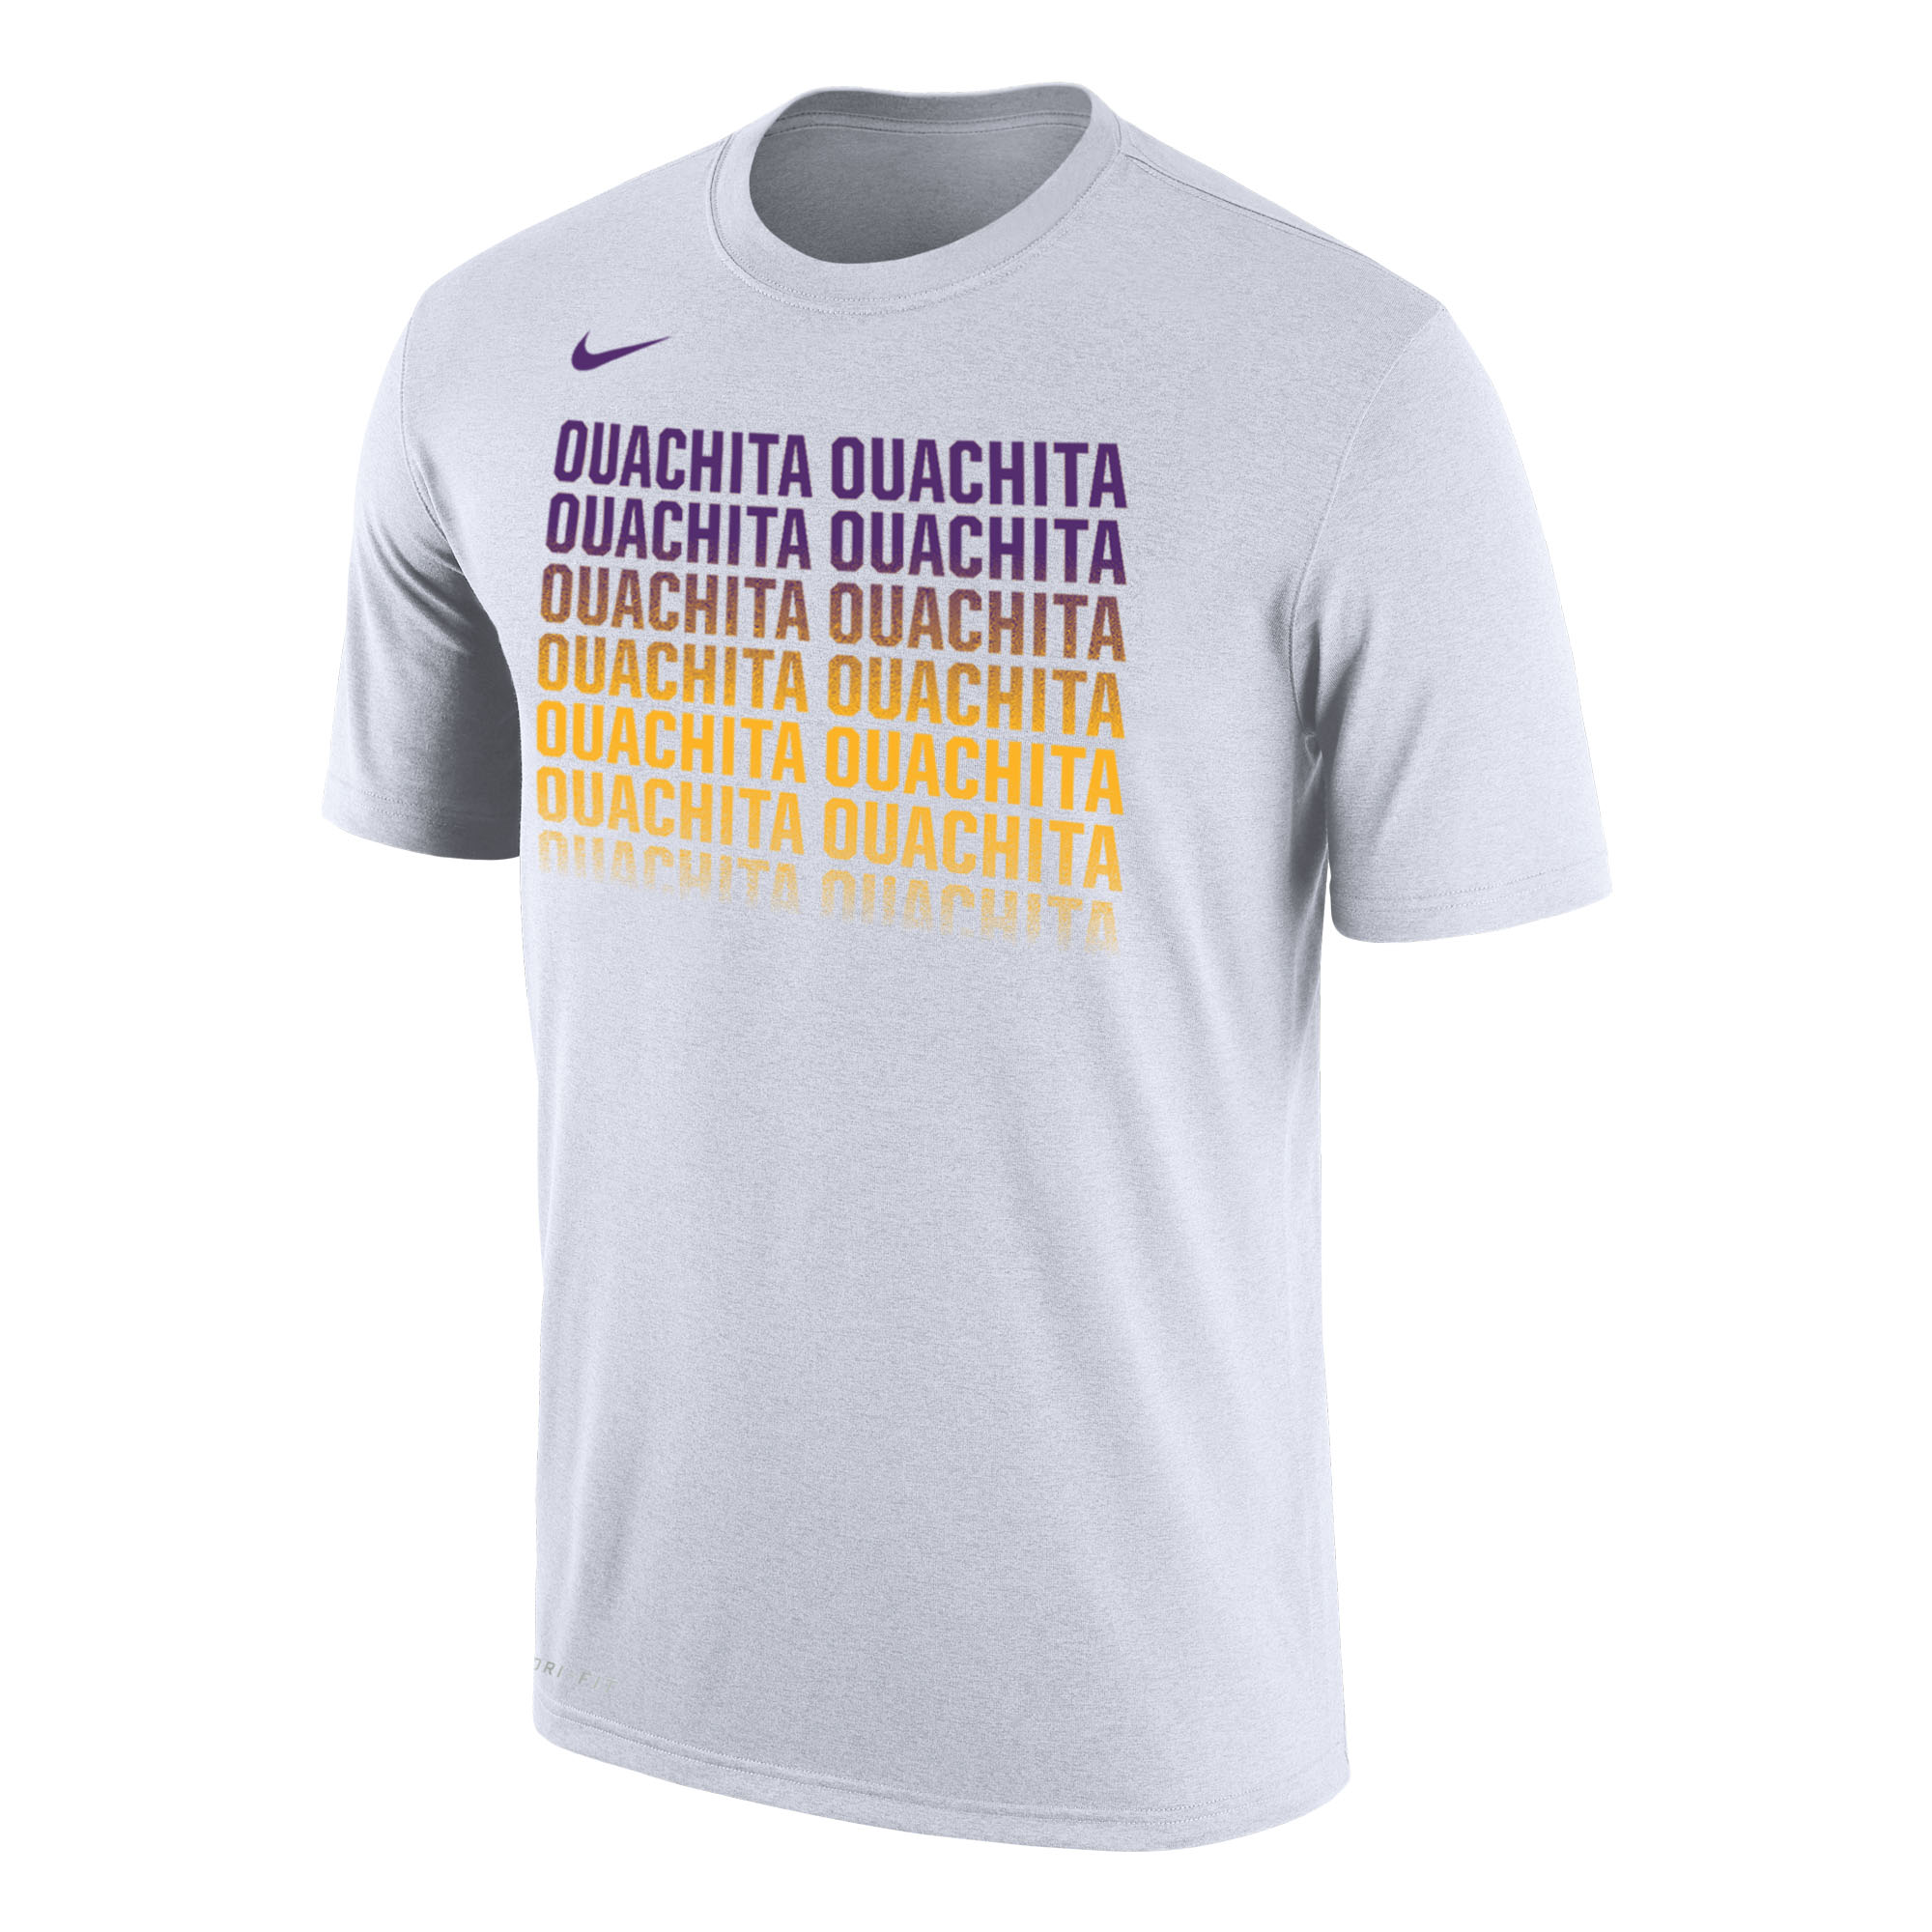 image of: OUACHITA NIKE DRI-FIT SS OMBRE TEE